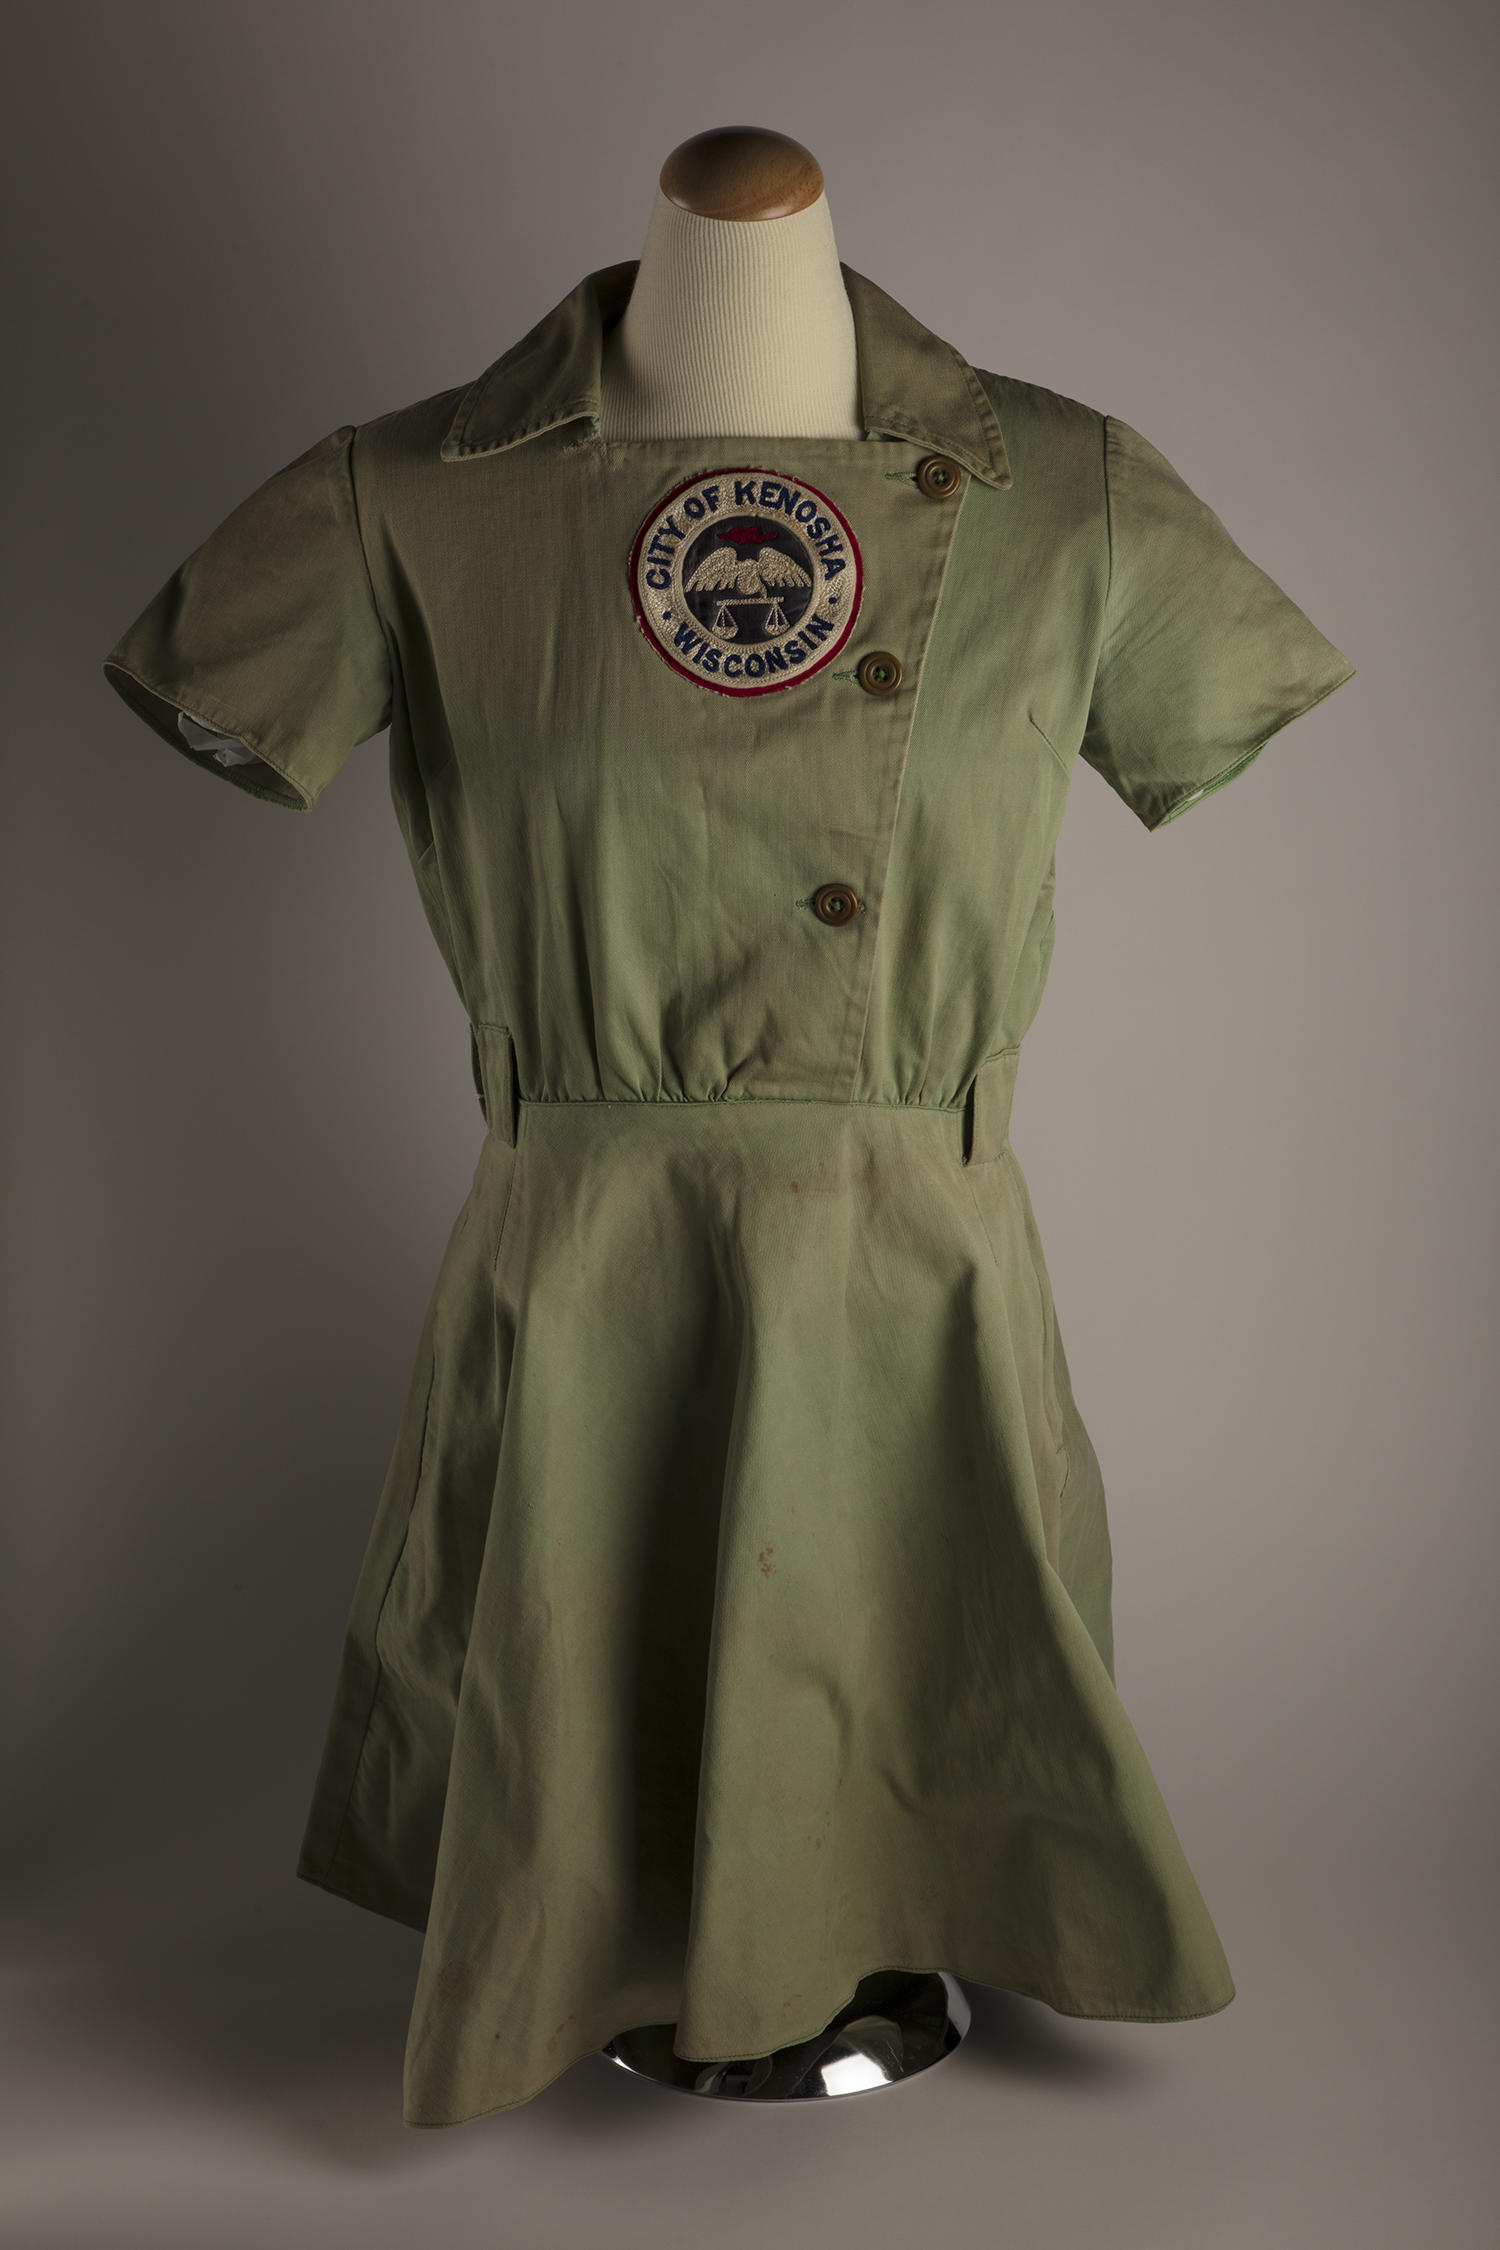 This Kenosha Comets uniform was worn by Audrey Wagner during her seven seasons with the team, from 1943-1949. (Milo Stewart Jr. / National Baseball Hall of Fame and Museum)